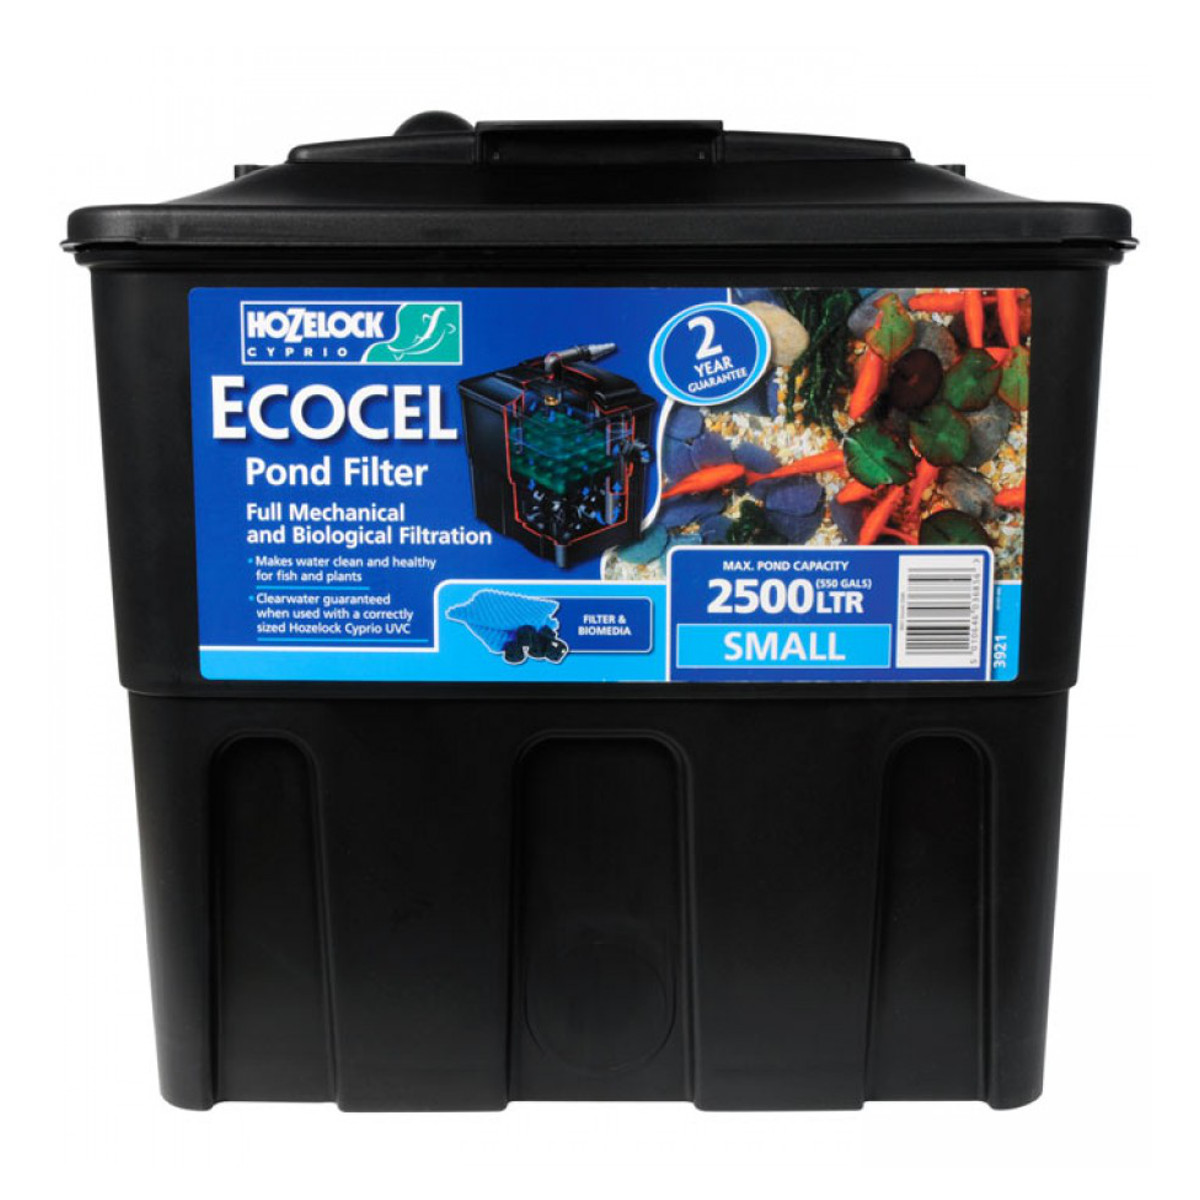 Hozelock ecocel garden pond water filter systems koi for Pond water purification system